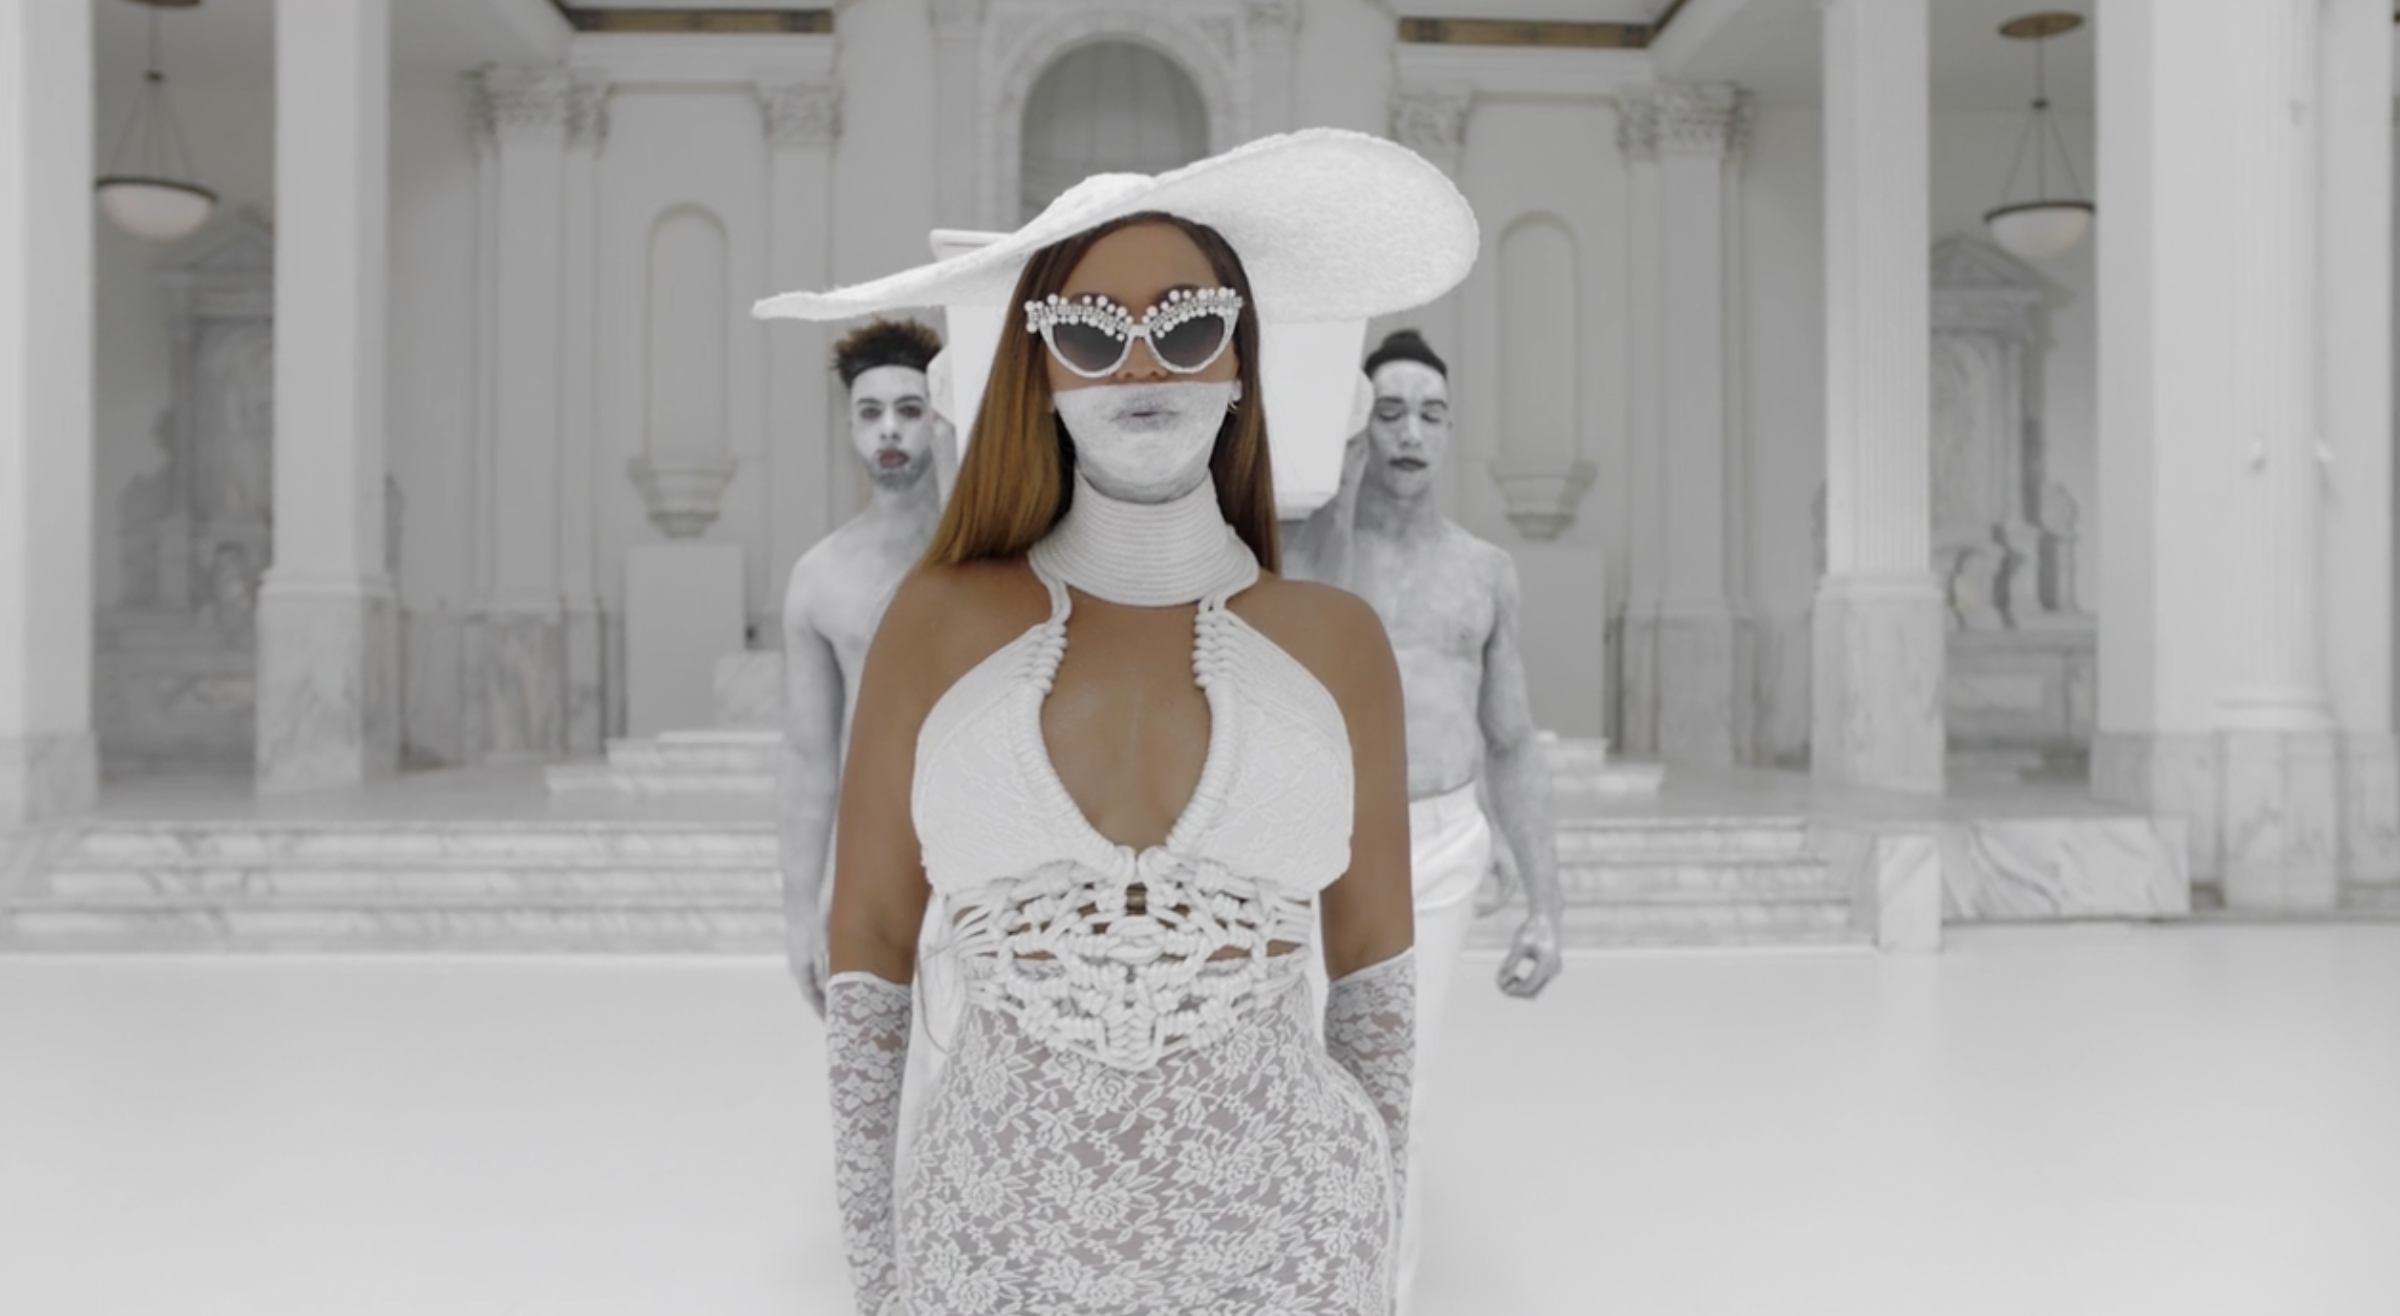 Beyoncé with a white dress made of rope at the top and lace at the bottom